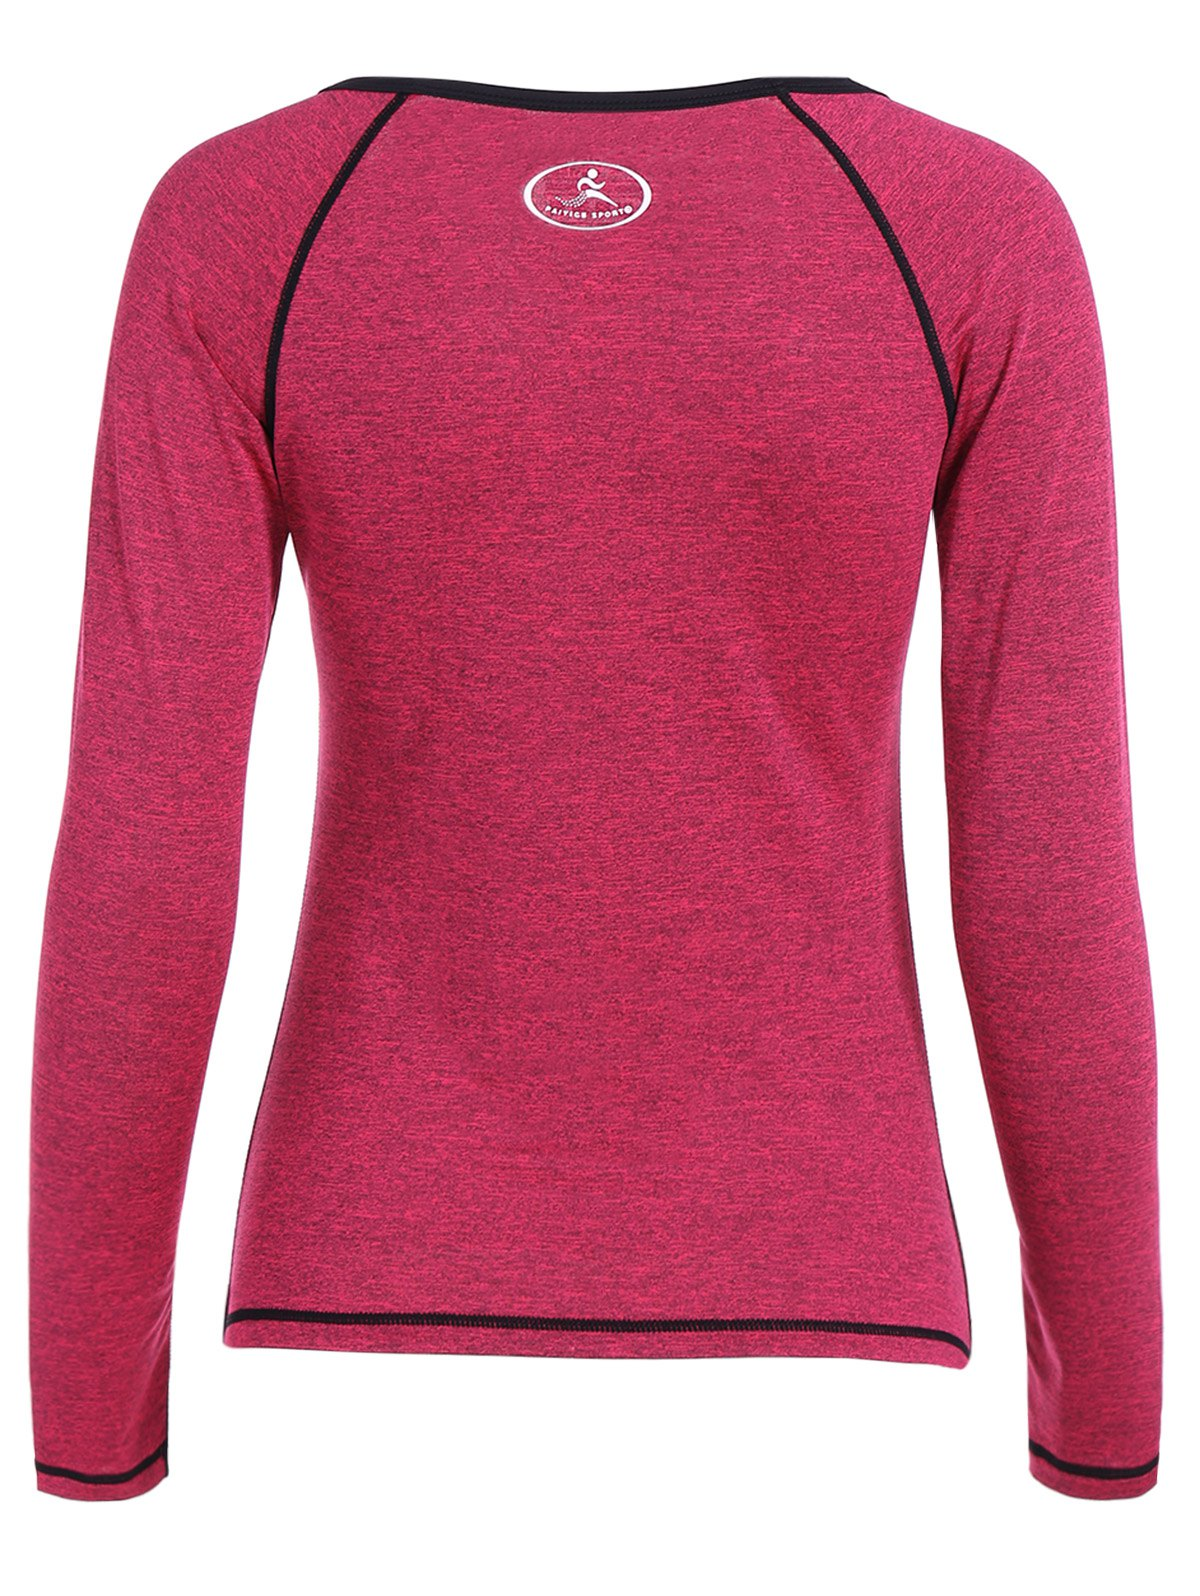 Heather Pullover T-Shirt - rose S